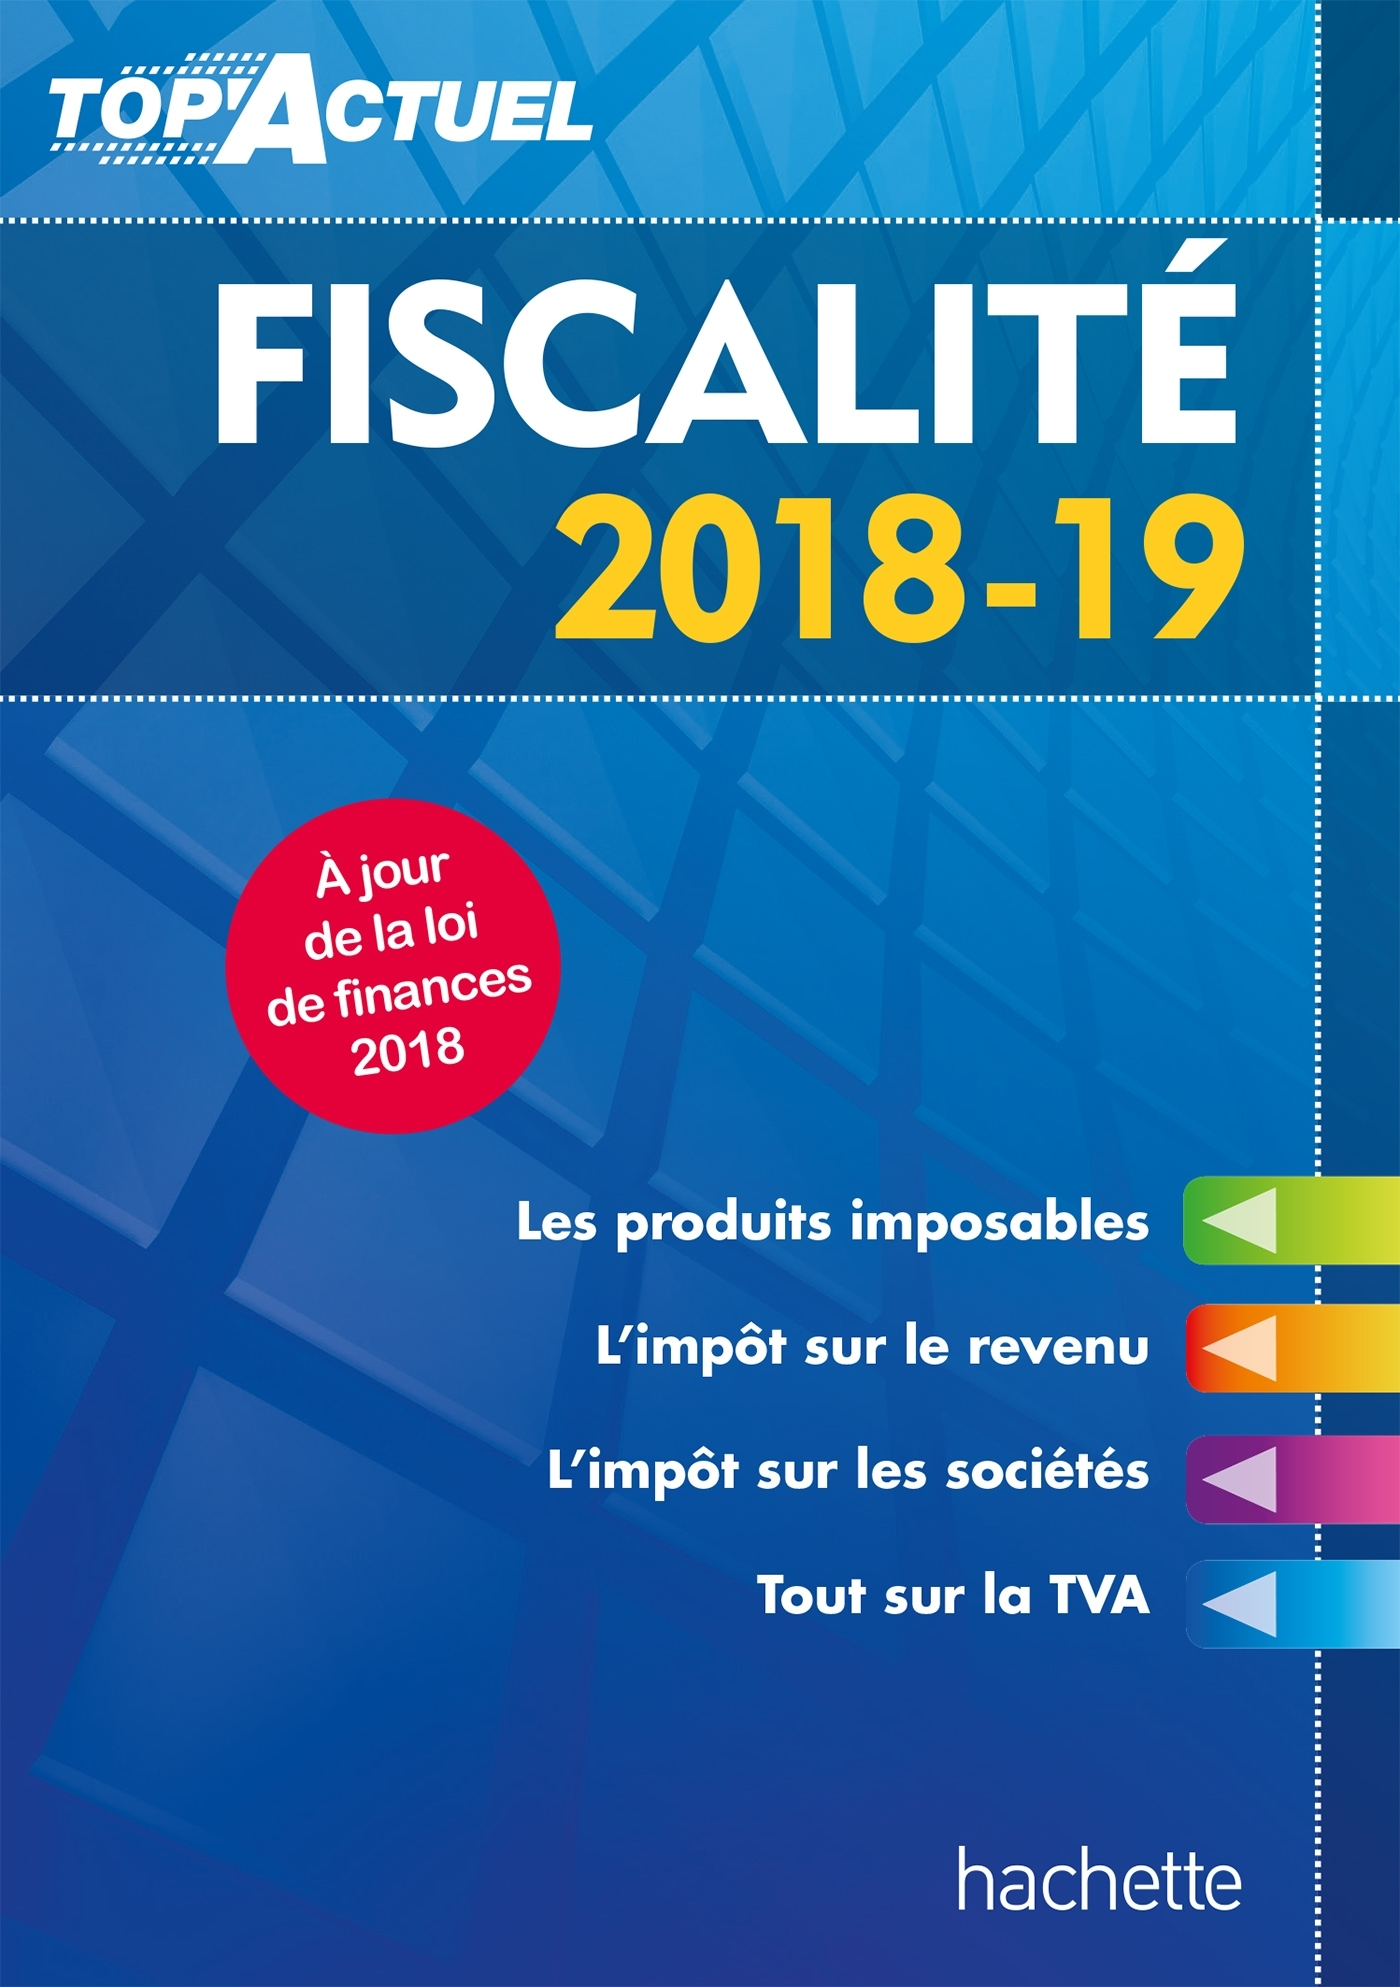 TOP'ACTUEL FISCALITE 2018-2019